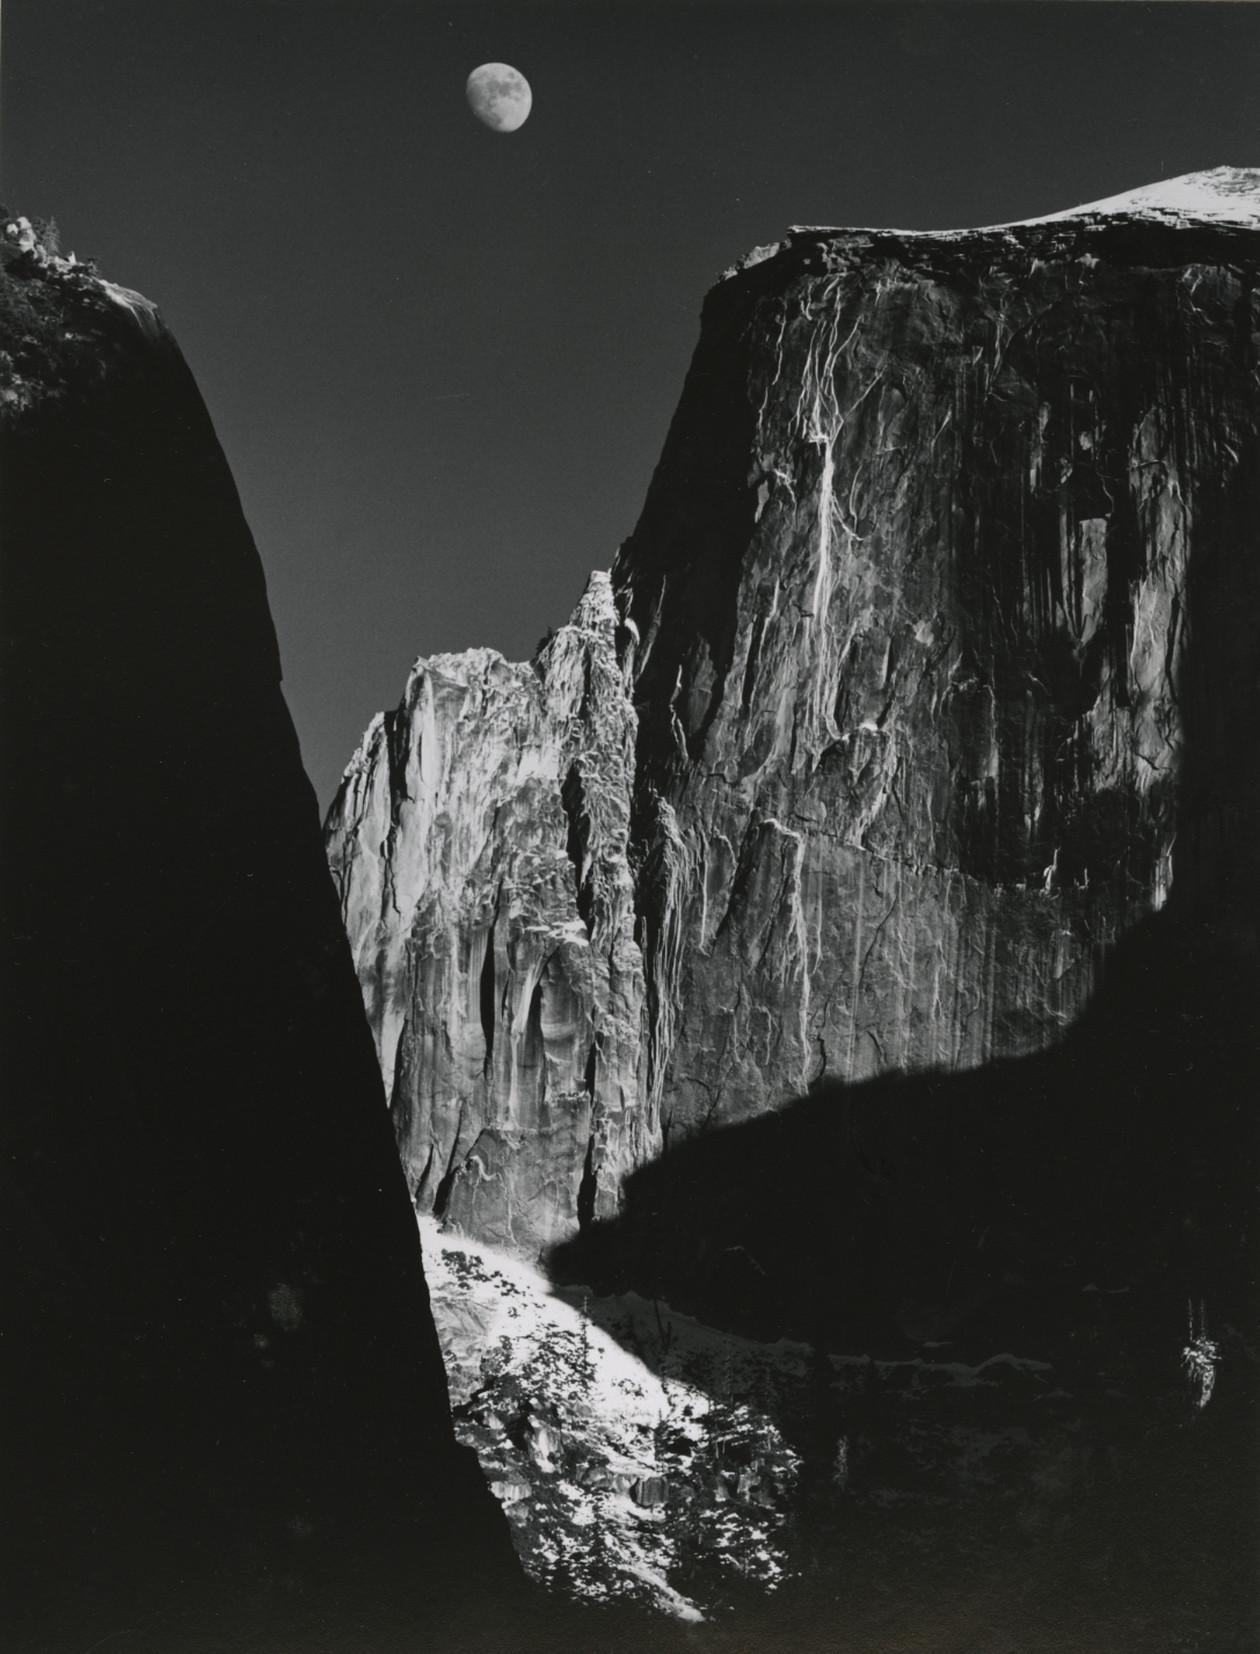 Moon and Half Dome (from Yosemite Special Edition Series) (1960) by Ansel Adams